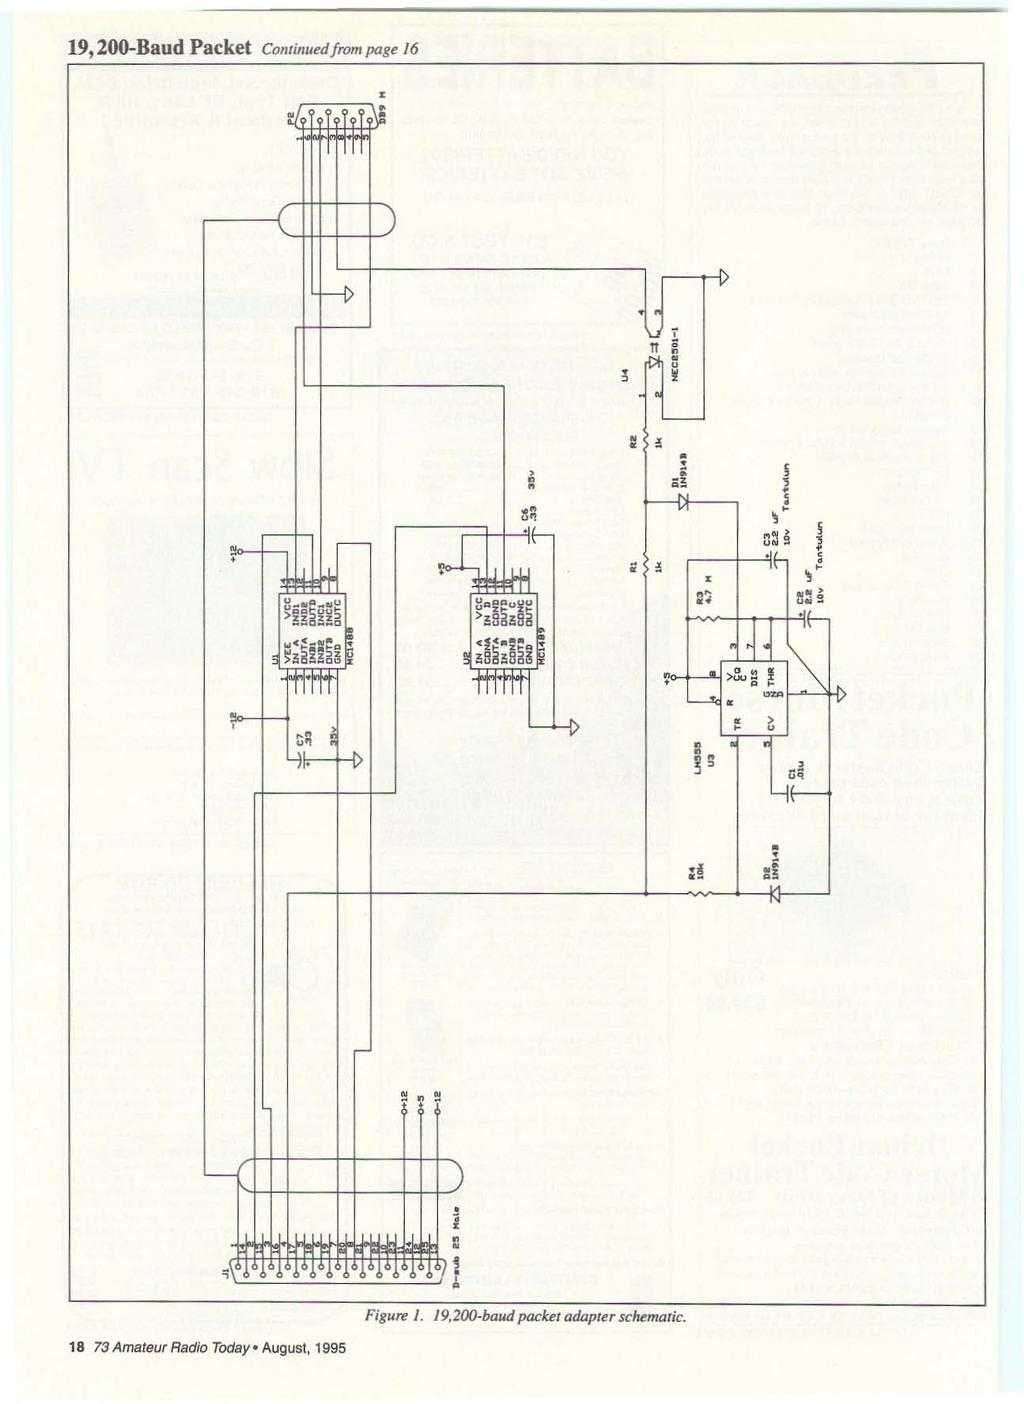 Ve7pmrs Solar Lander Pdf 277 Volt Light Wiring Diagram In Addition Hoa Switch 19 200 Baud Packet Continuedf Rom Page 16 Rf I